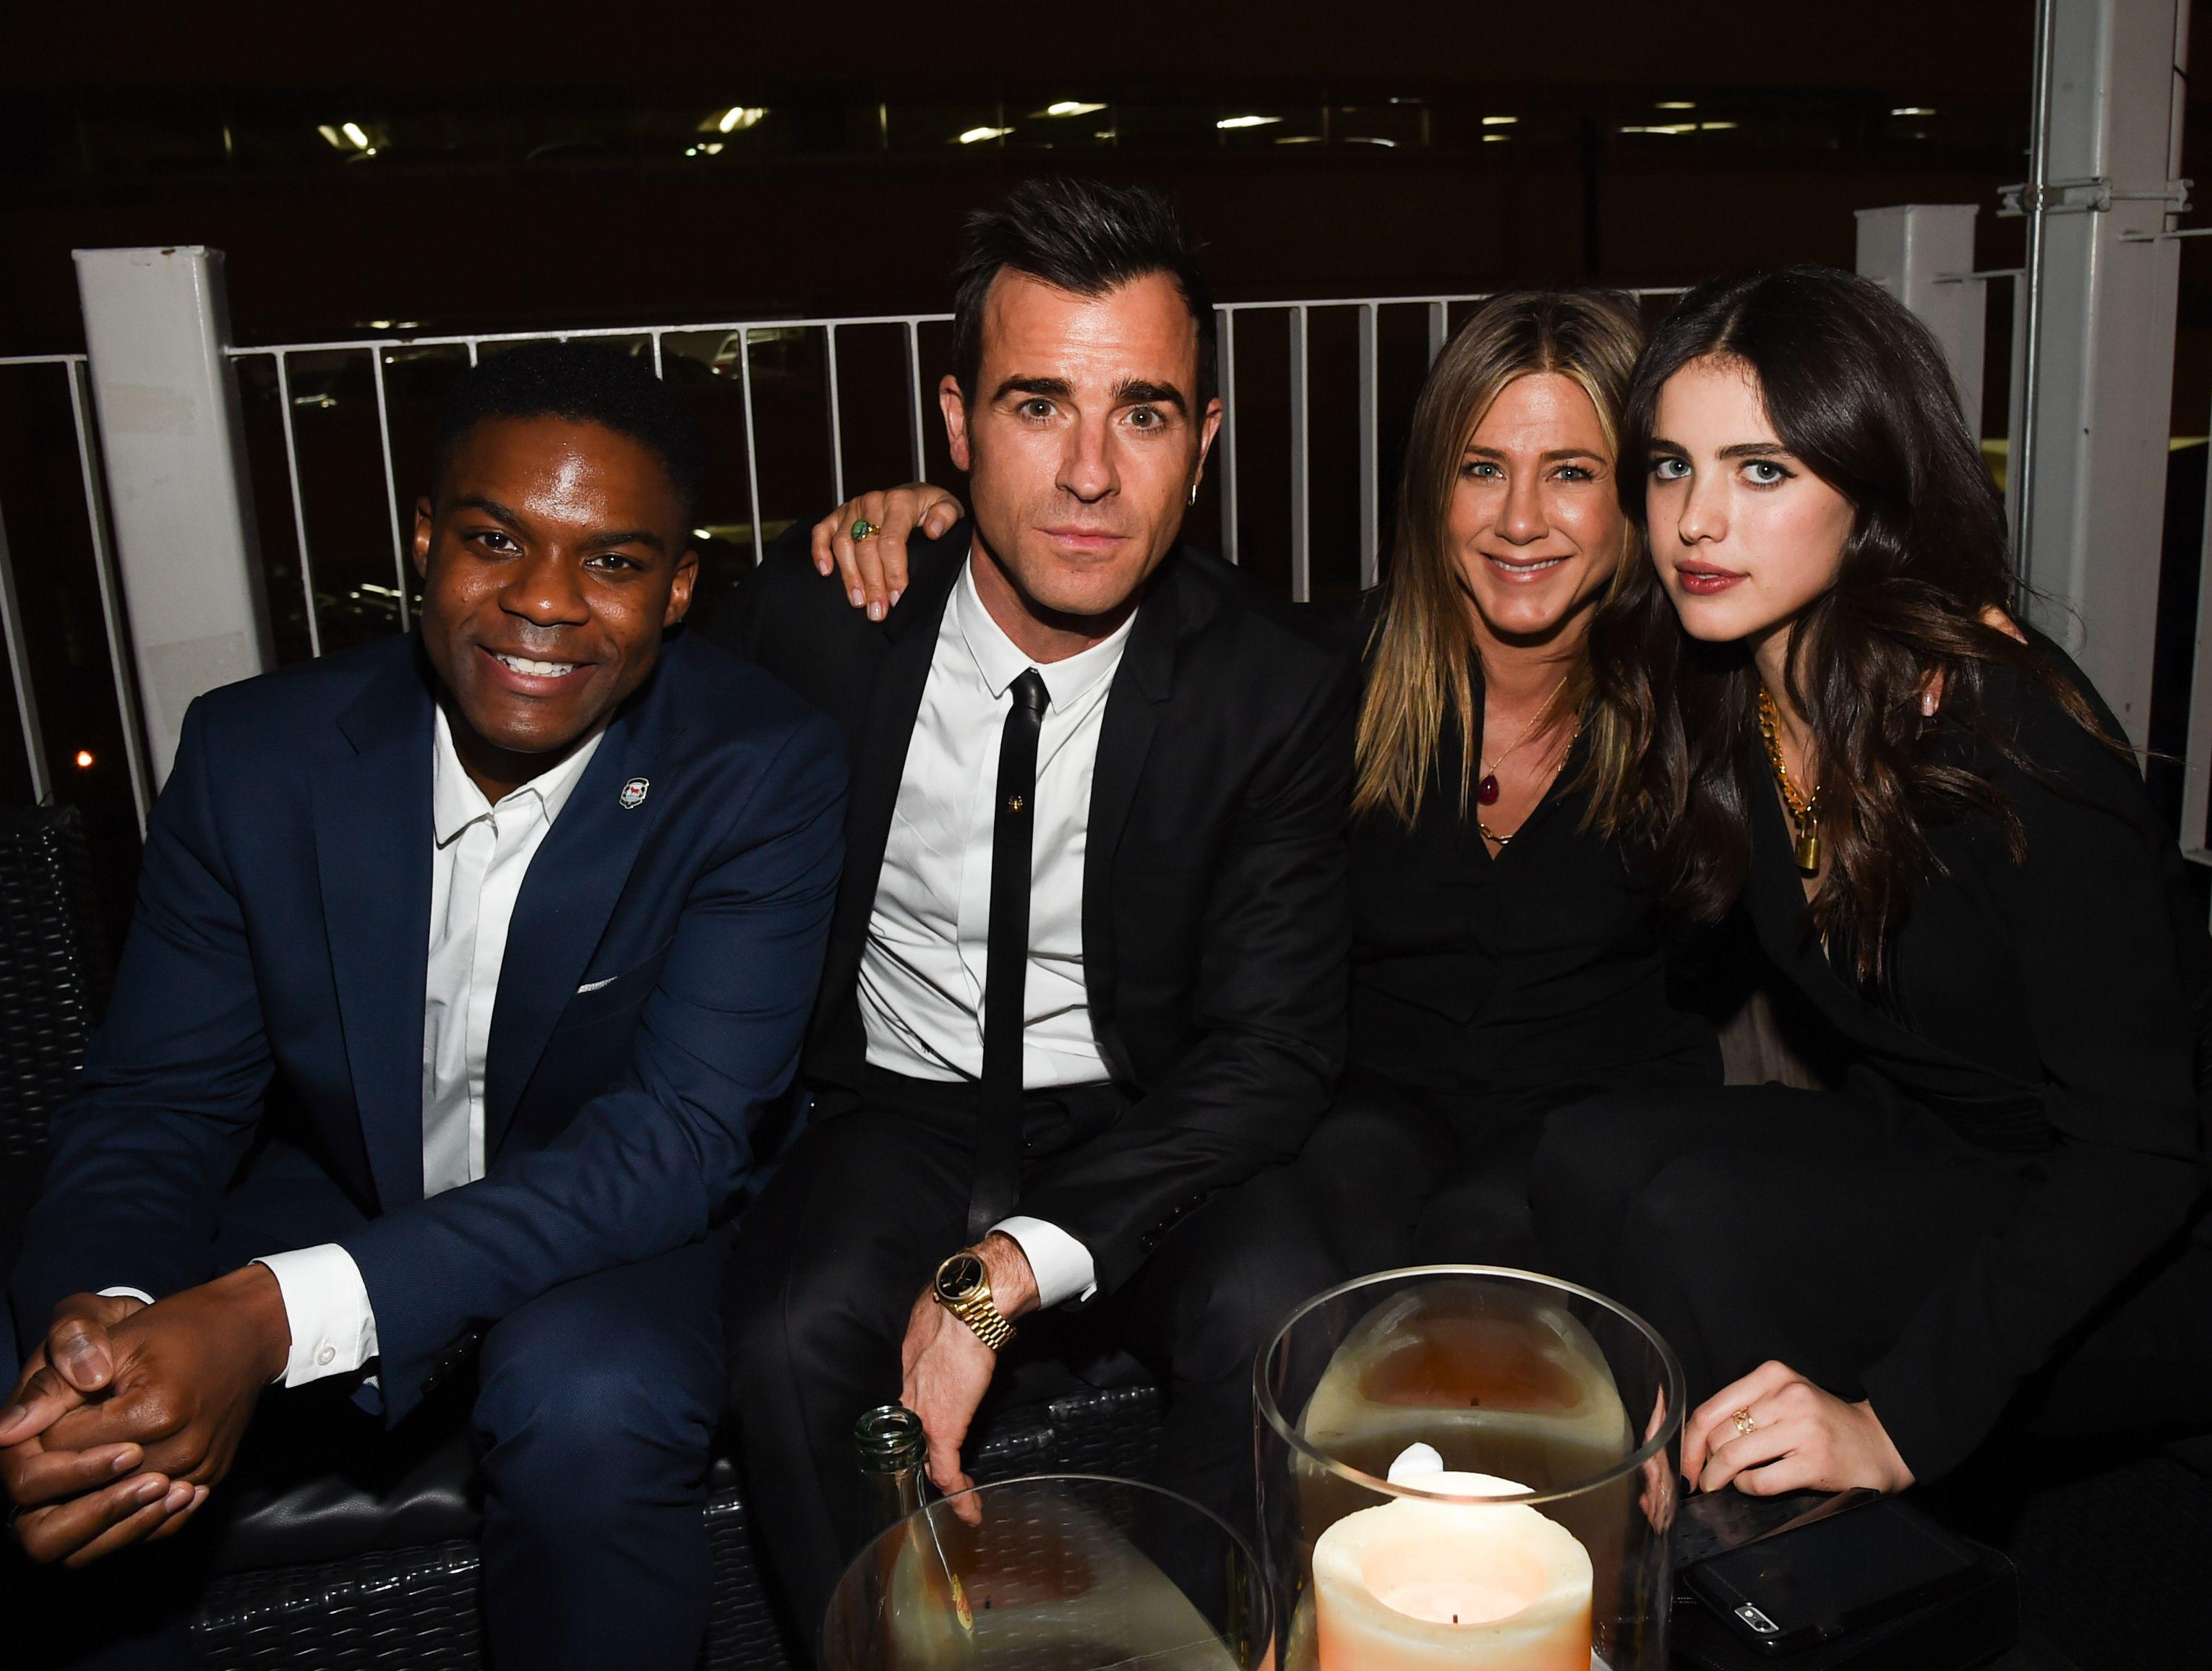 Justin Theroux, Jennifer Aniston Celebrate Season 2 of 'The Leftovers' at Austin Premiere